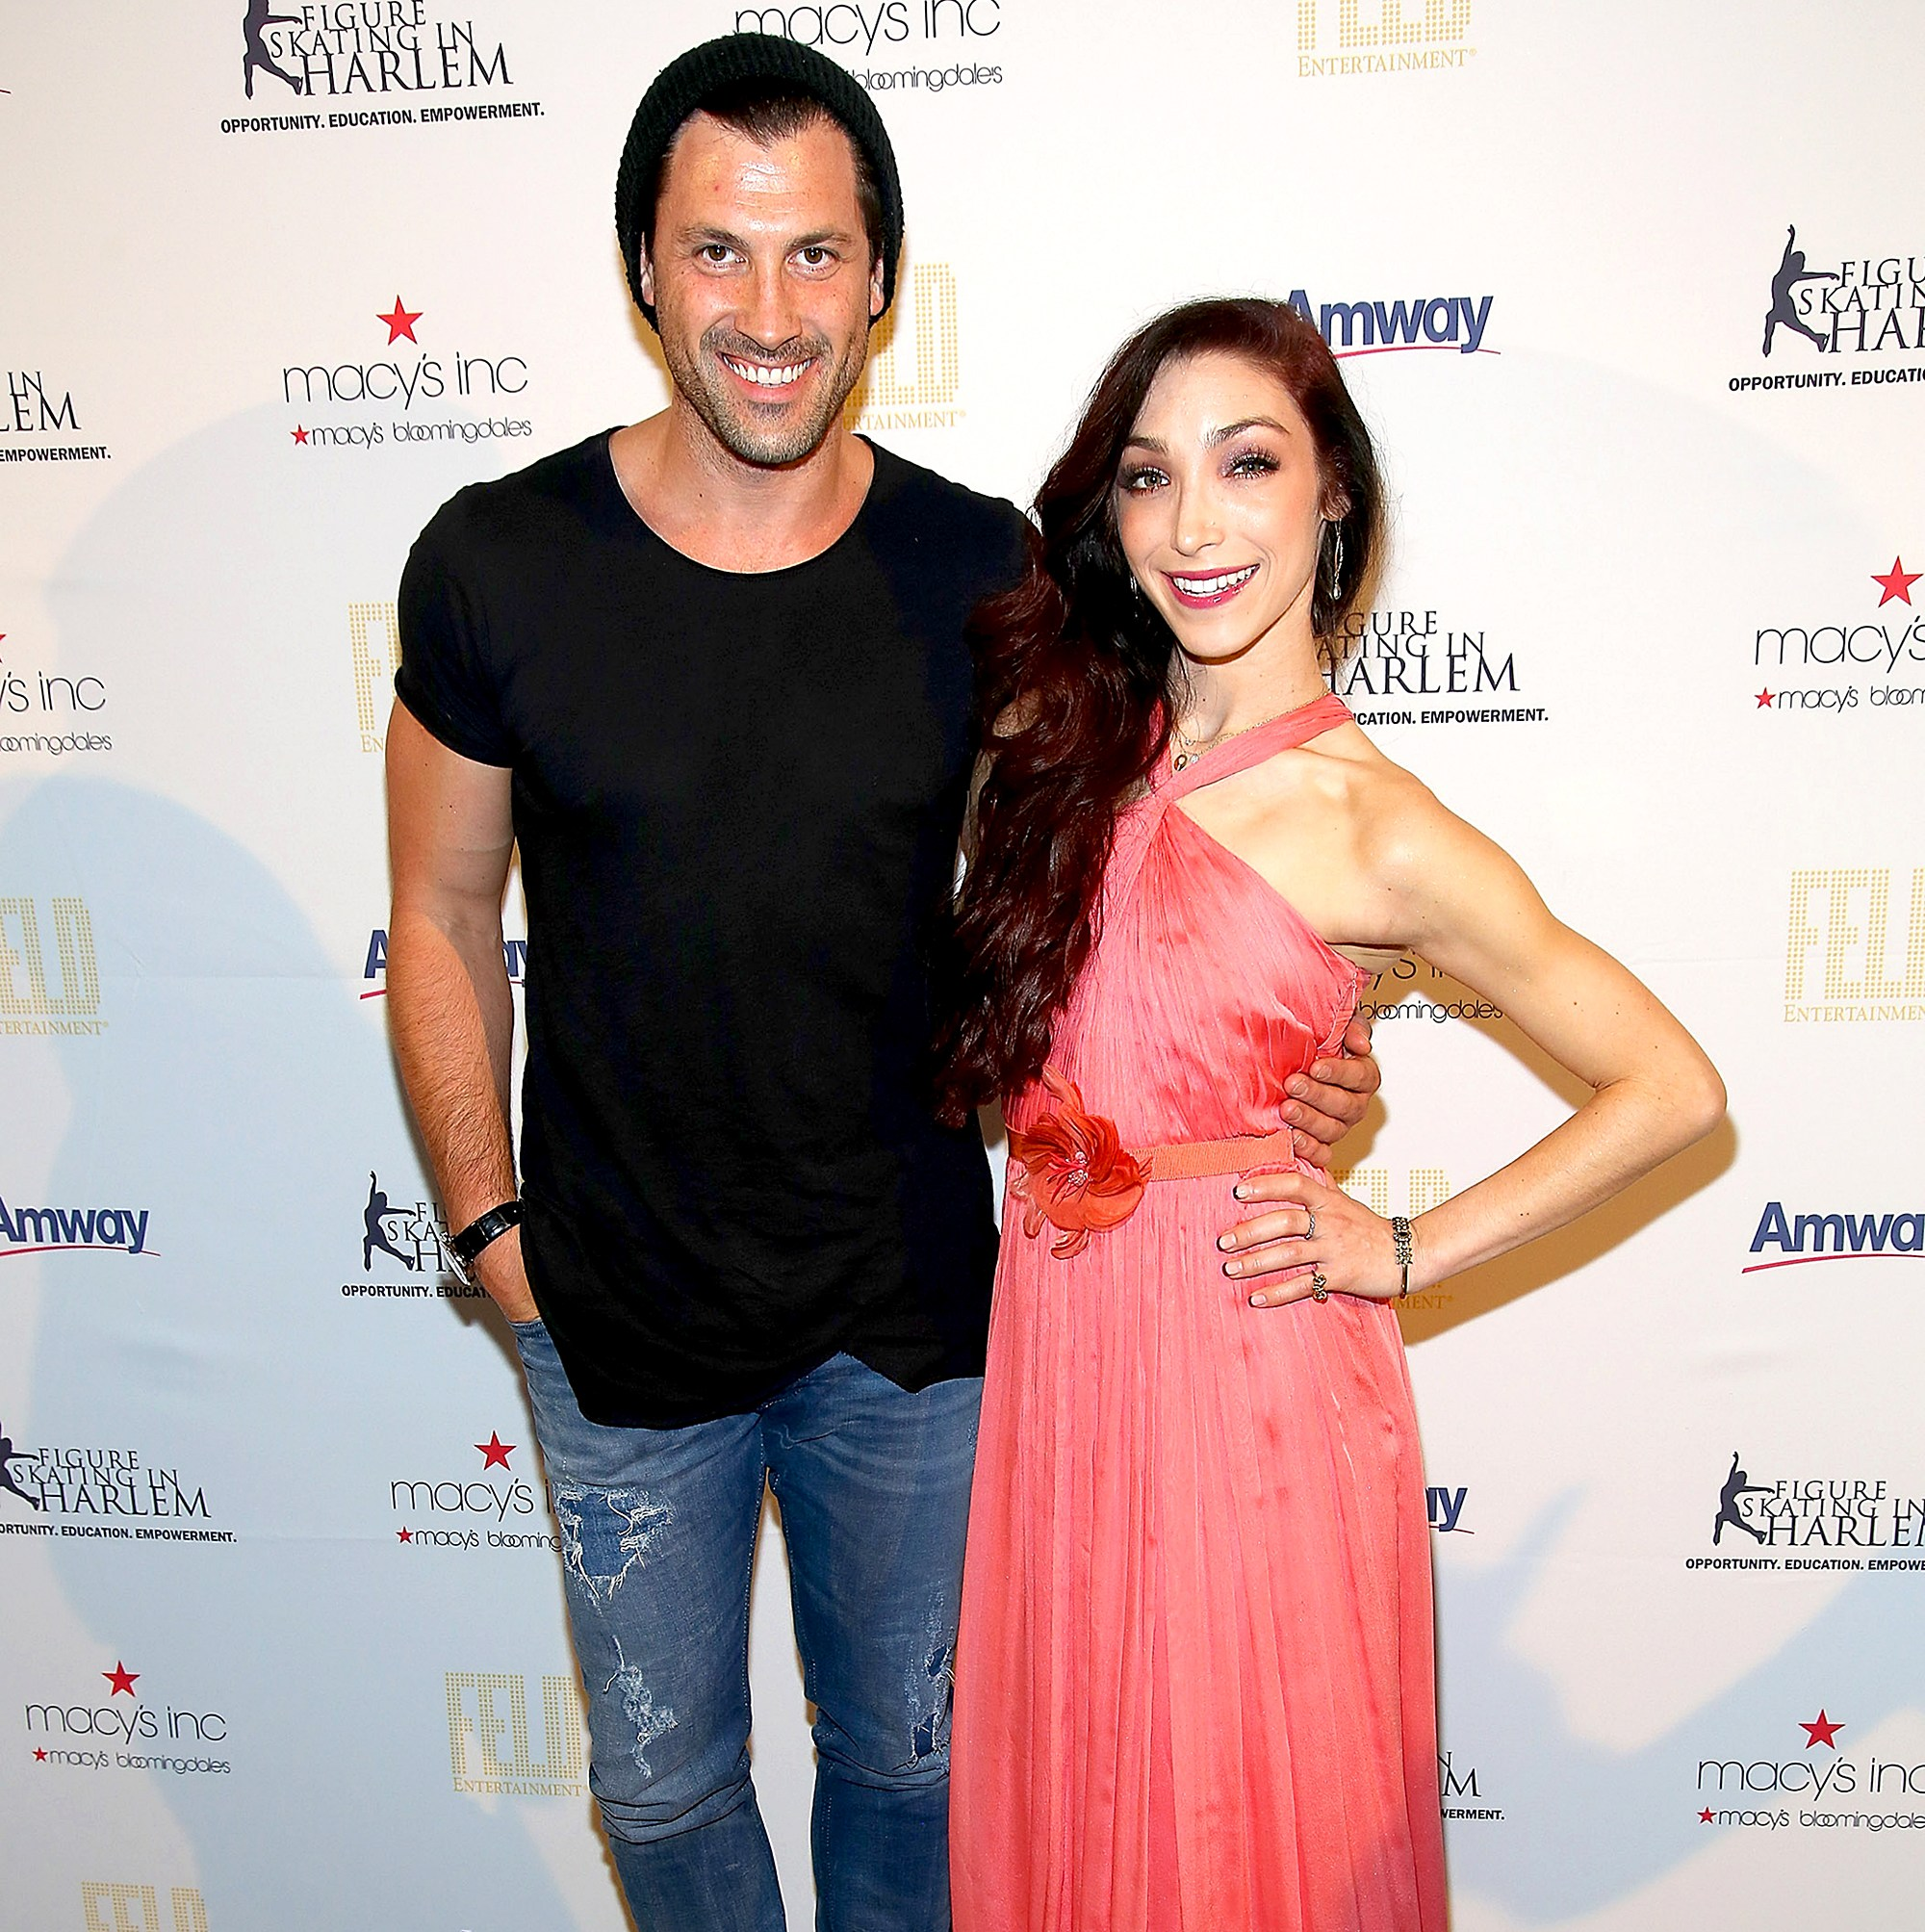 Maksim Chmerkovskiy and Meryl Davis attend The 10th Annual Skating With The Stars Benefit Gala at 583 Park Avenue in New York City.